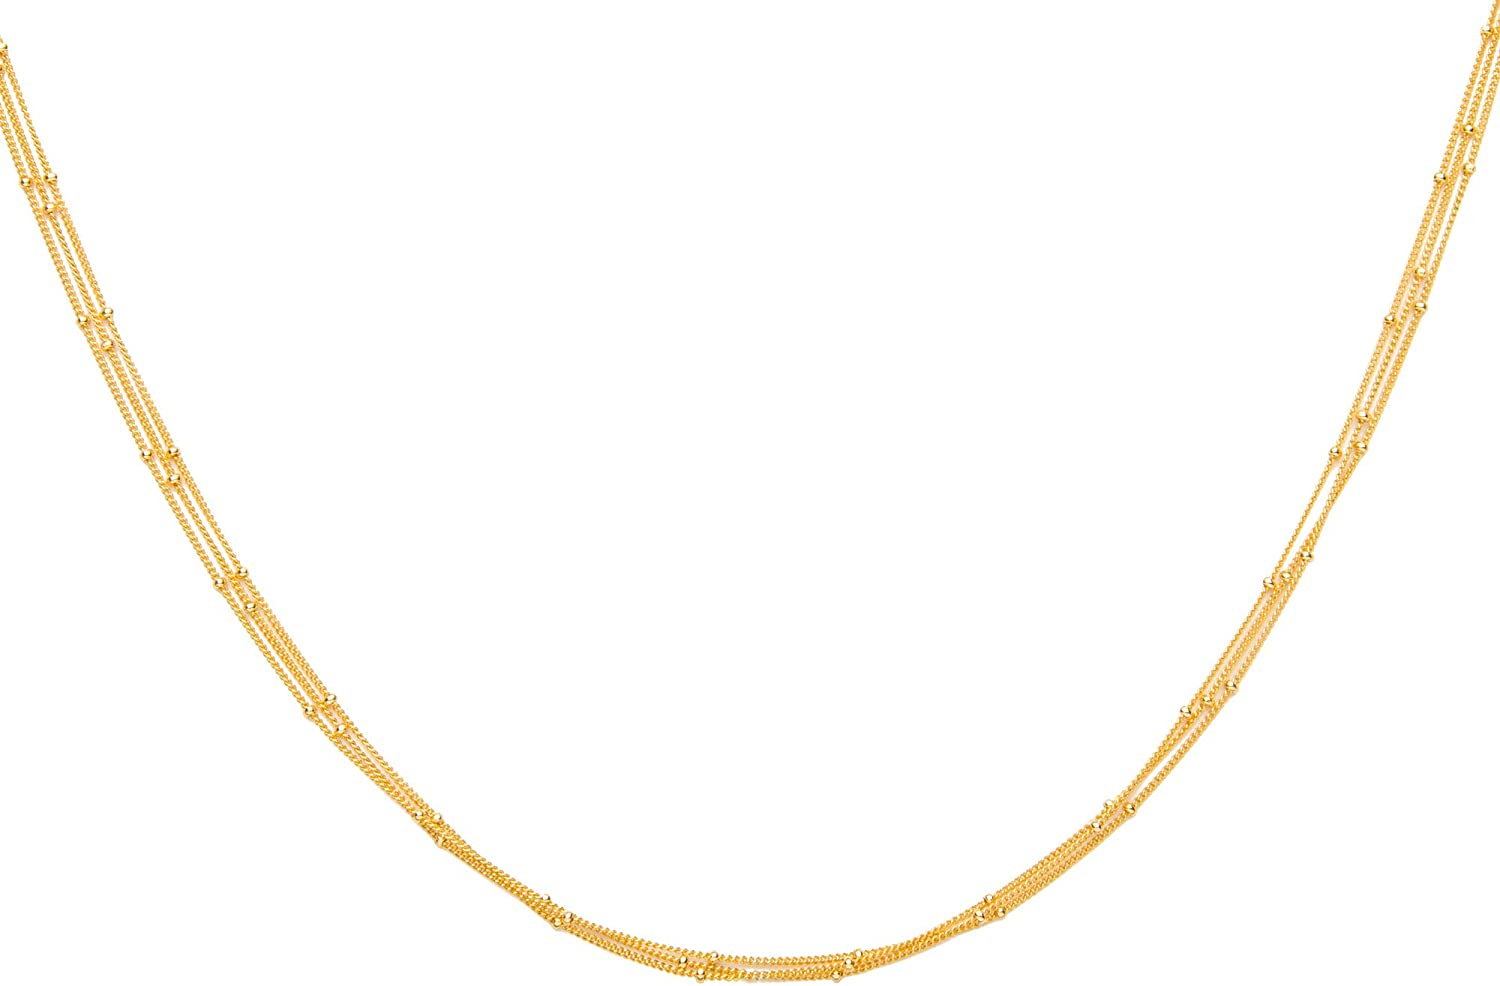 Timeless 18-Karat Vermeil Chokers - Made of Gold Plated Three Delicate Chains 100% Nickel-Free